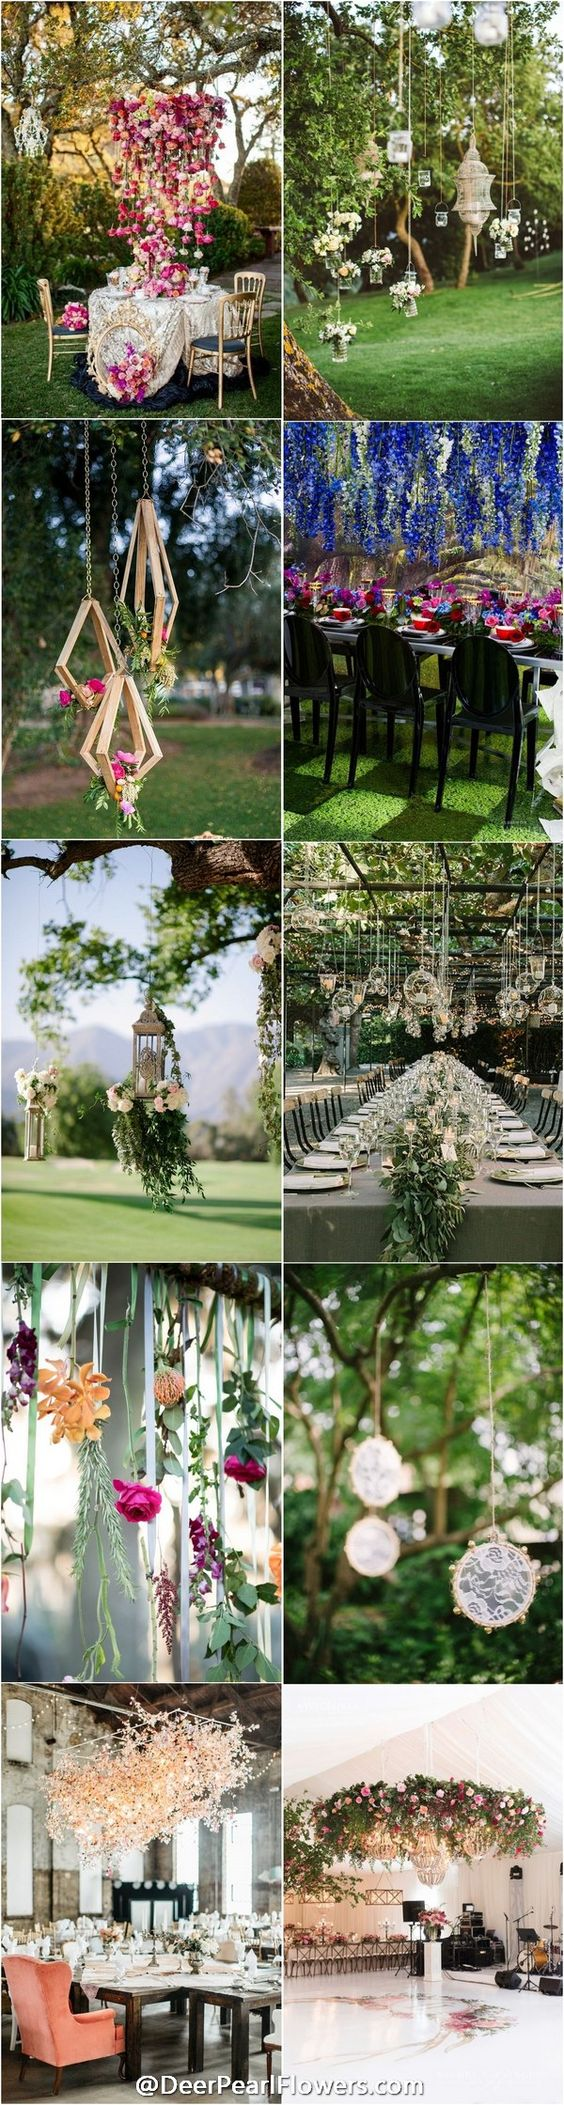 unique wedding ideas - hanging wedding ideas and themes / http://www.deerpearlflowers.com/hanging-wedding-decor-ideas/